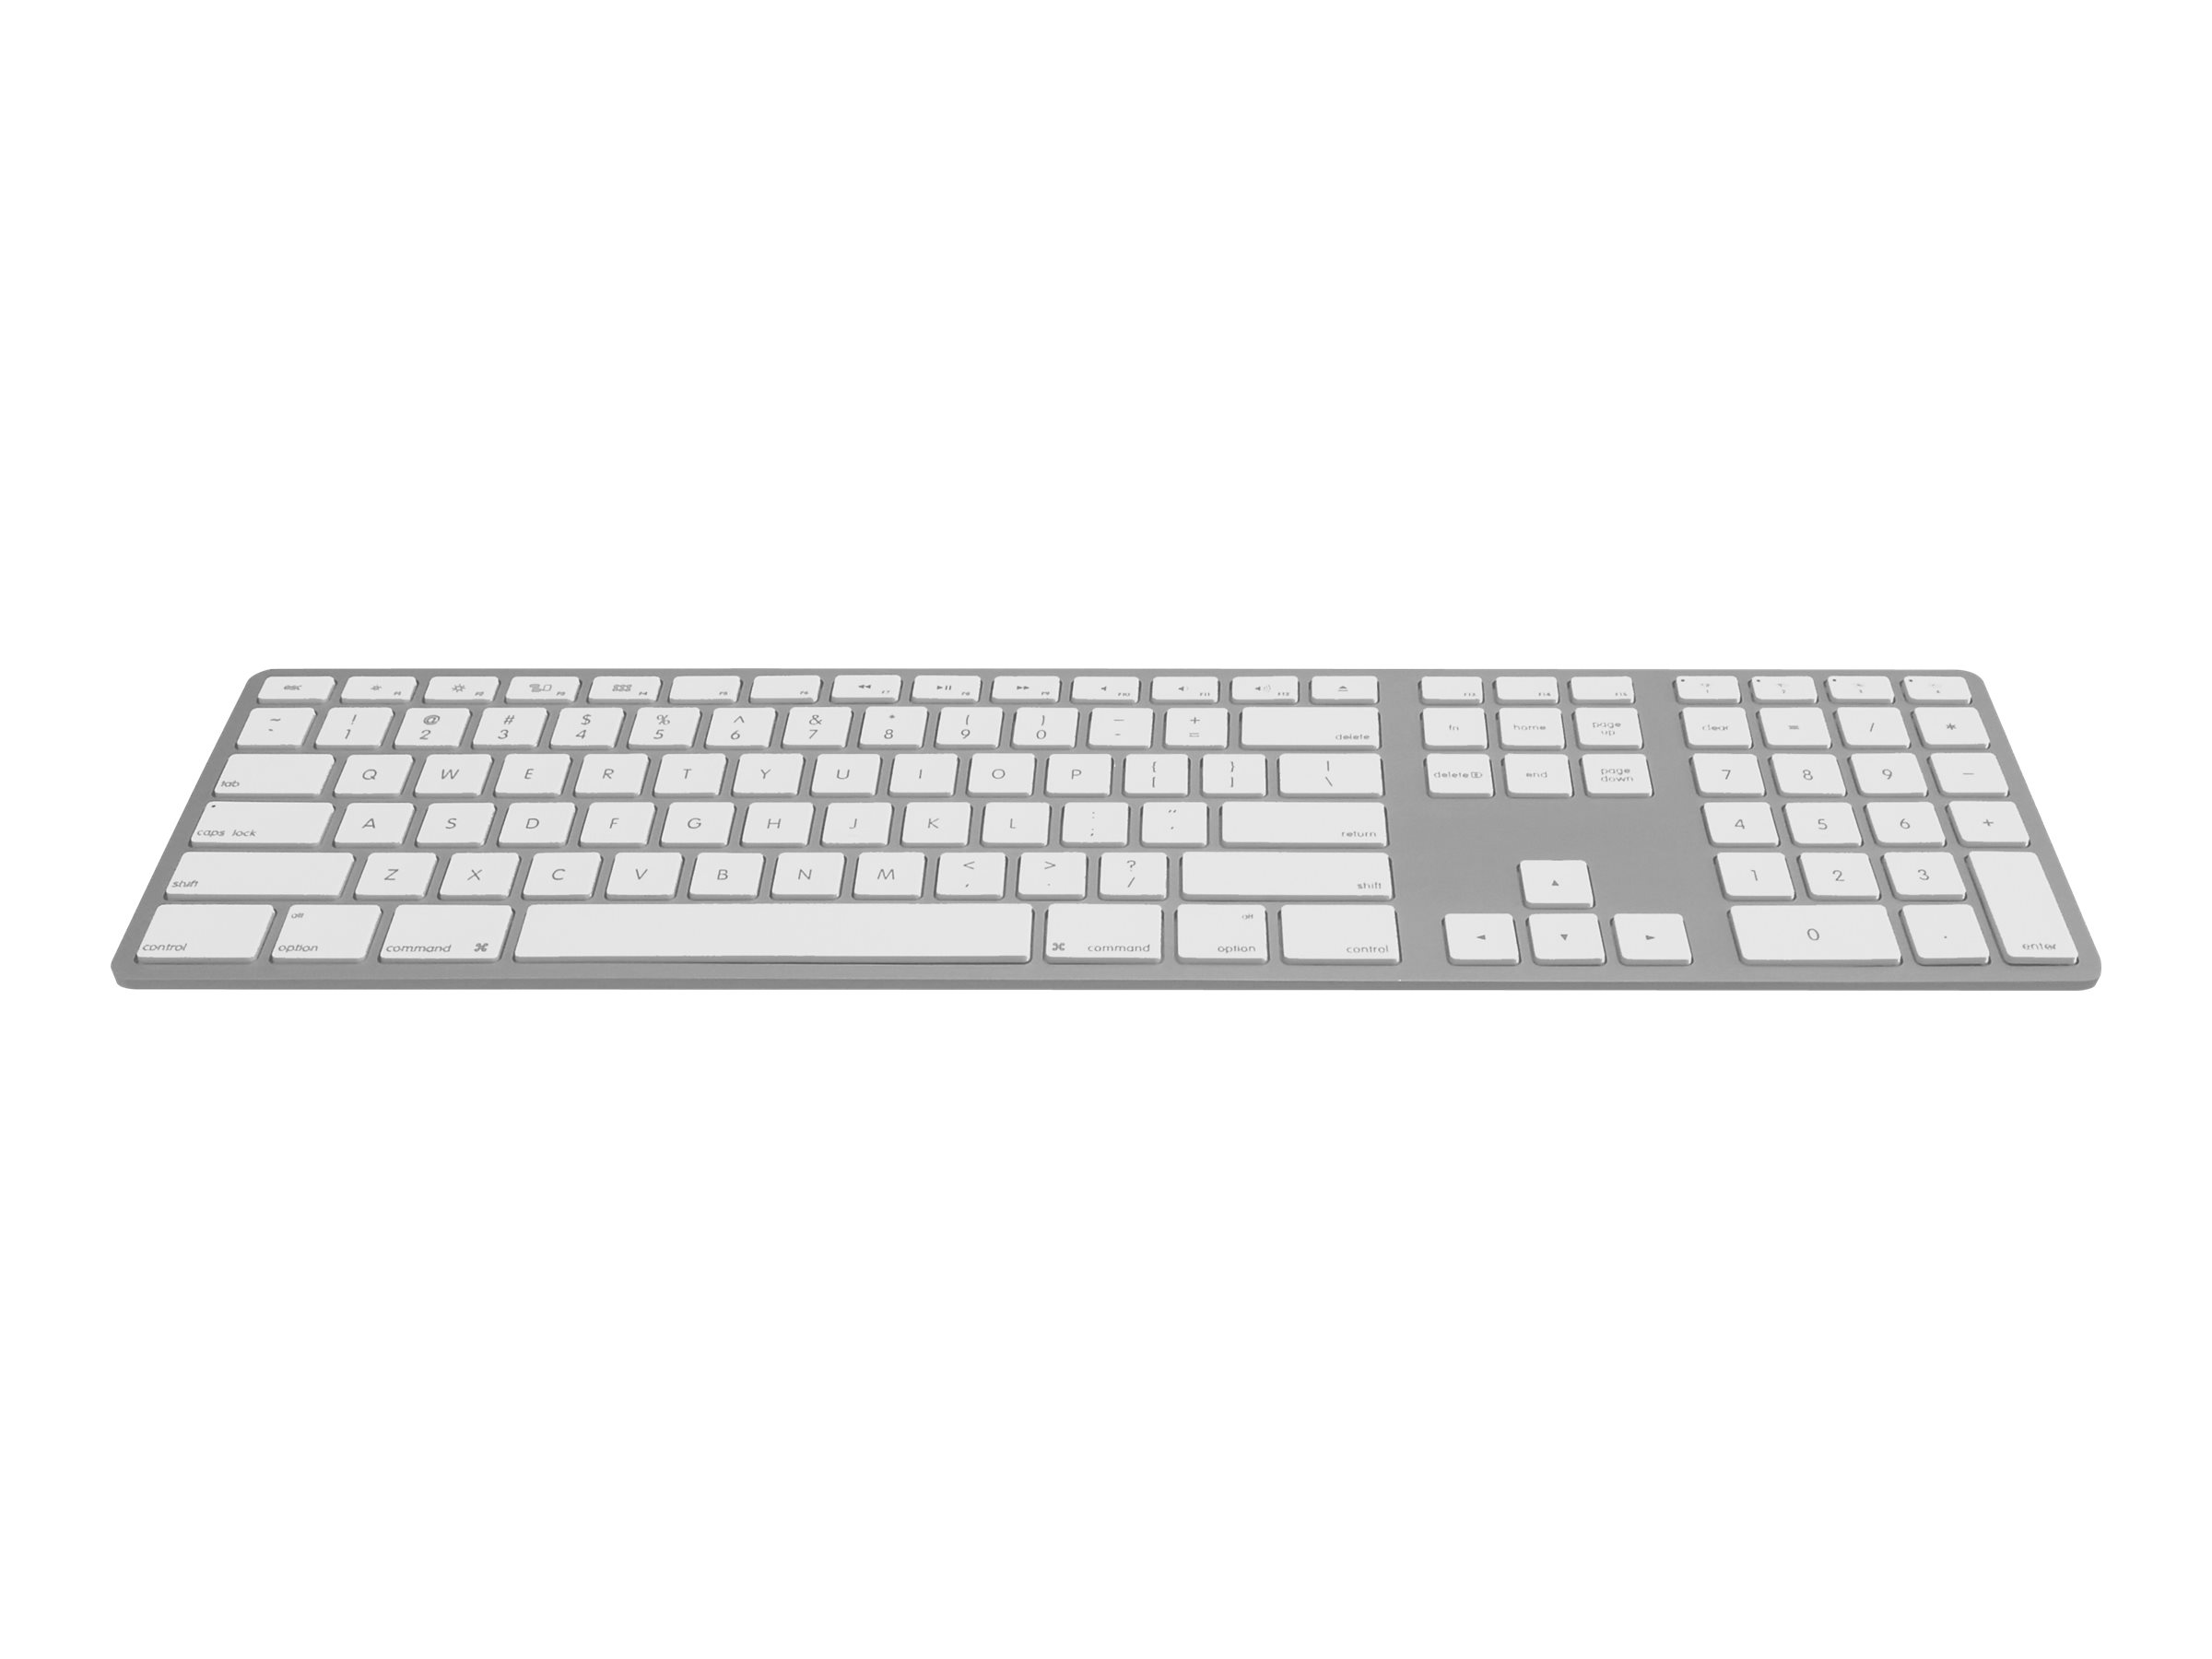 Jenimage - Tastatur - Bluetooth - Deutsch - Silber